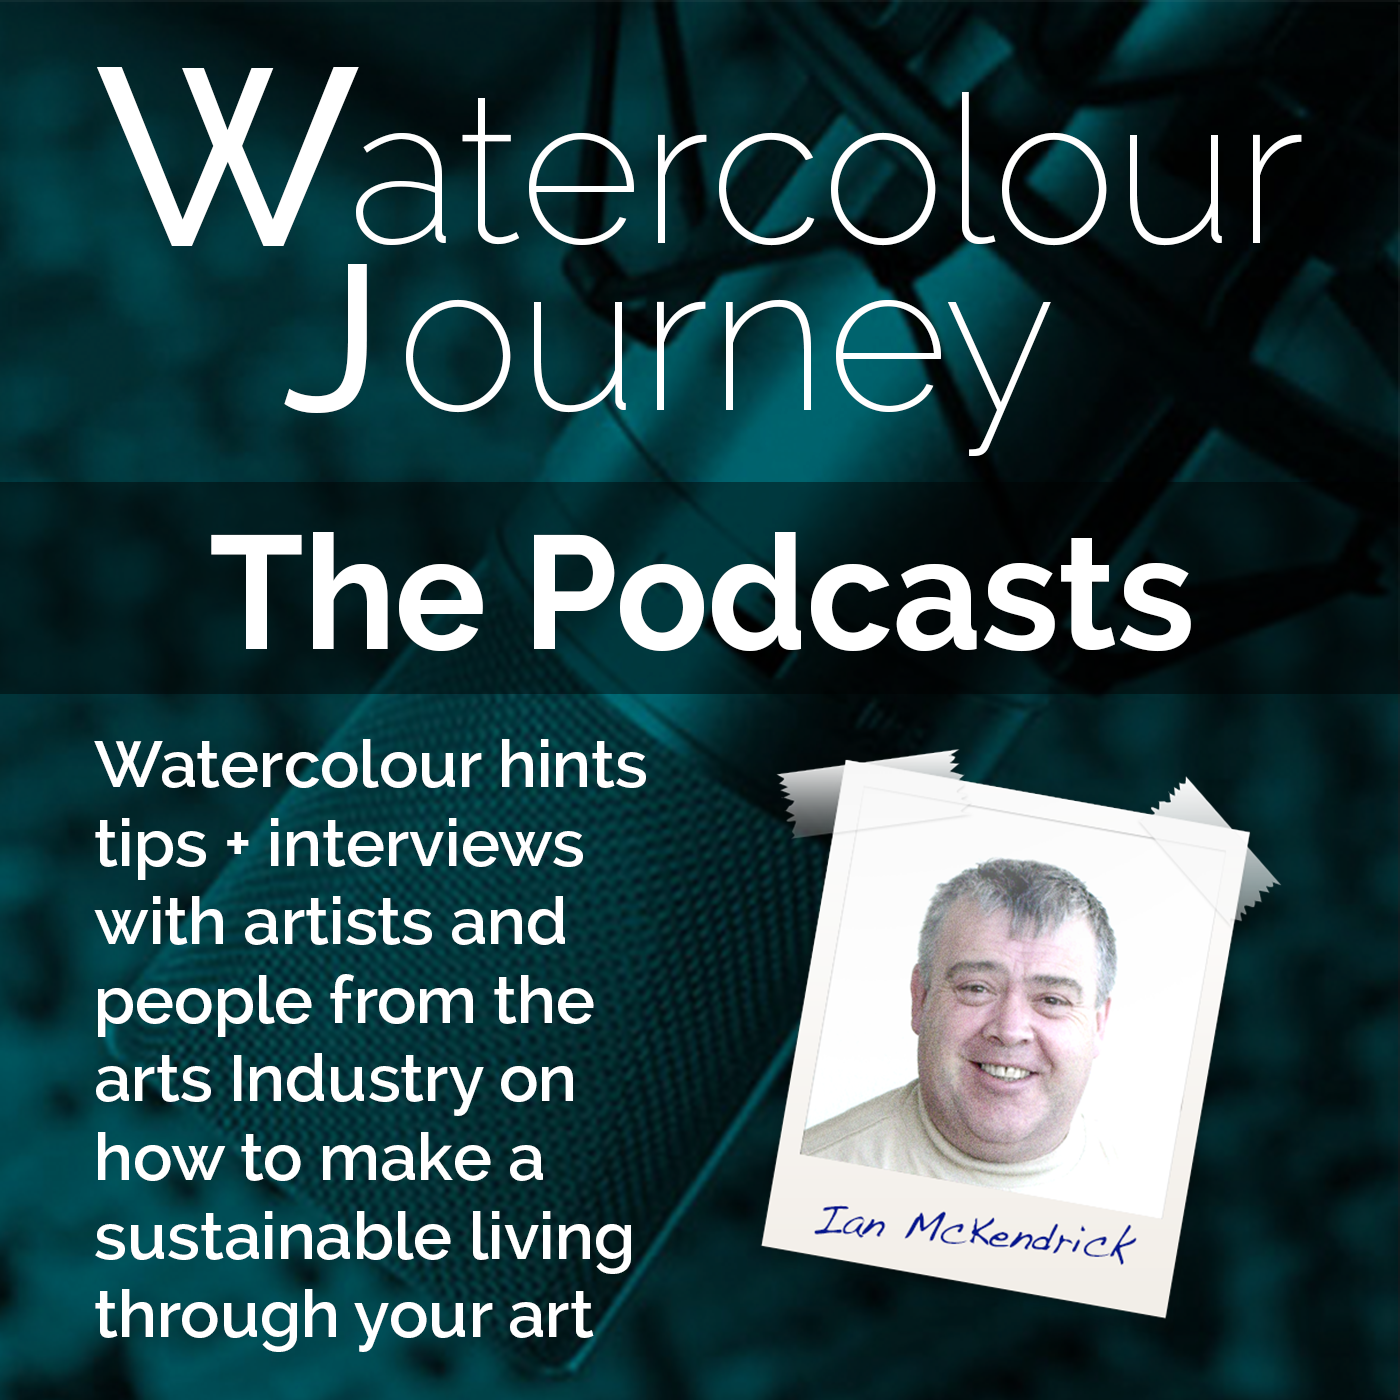 Watercolour Journey by Ian McKendrick